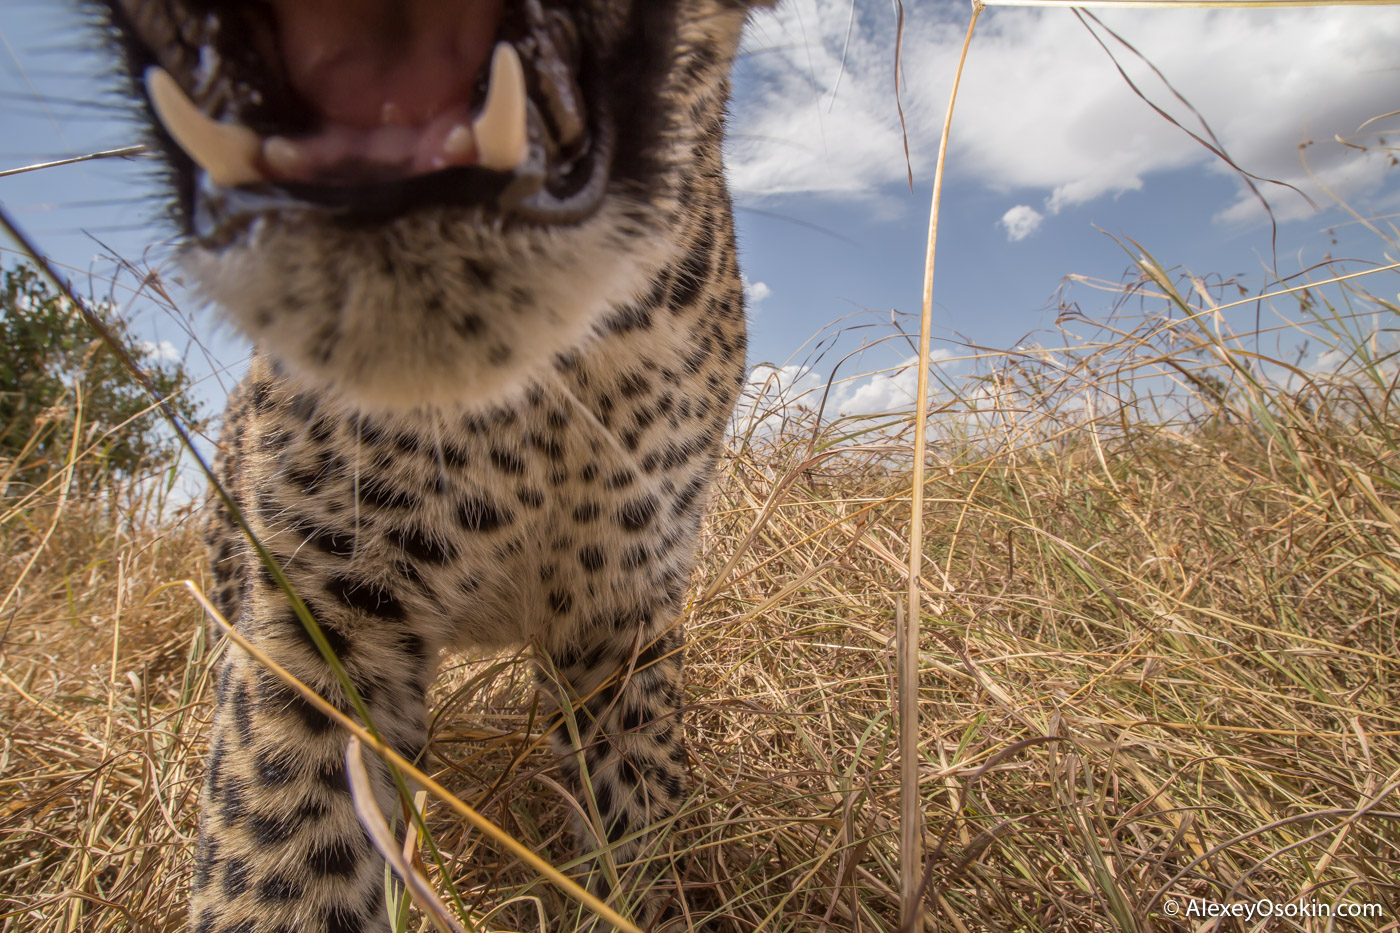 The Adventures of a Naturalist Photographer